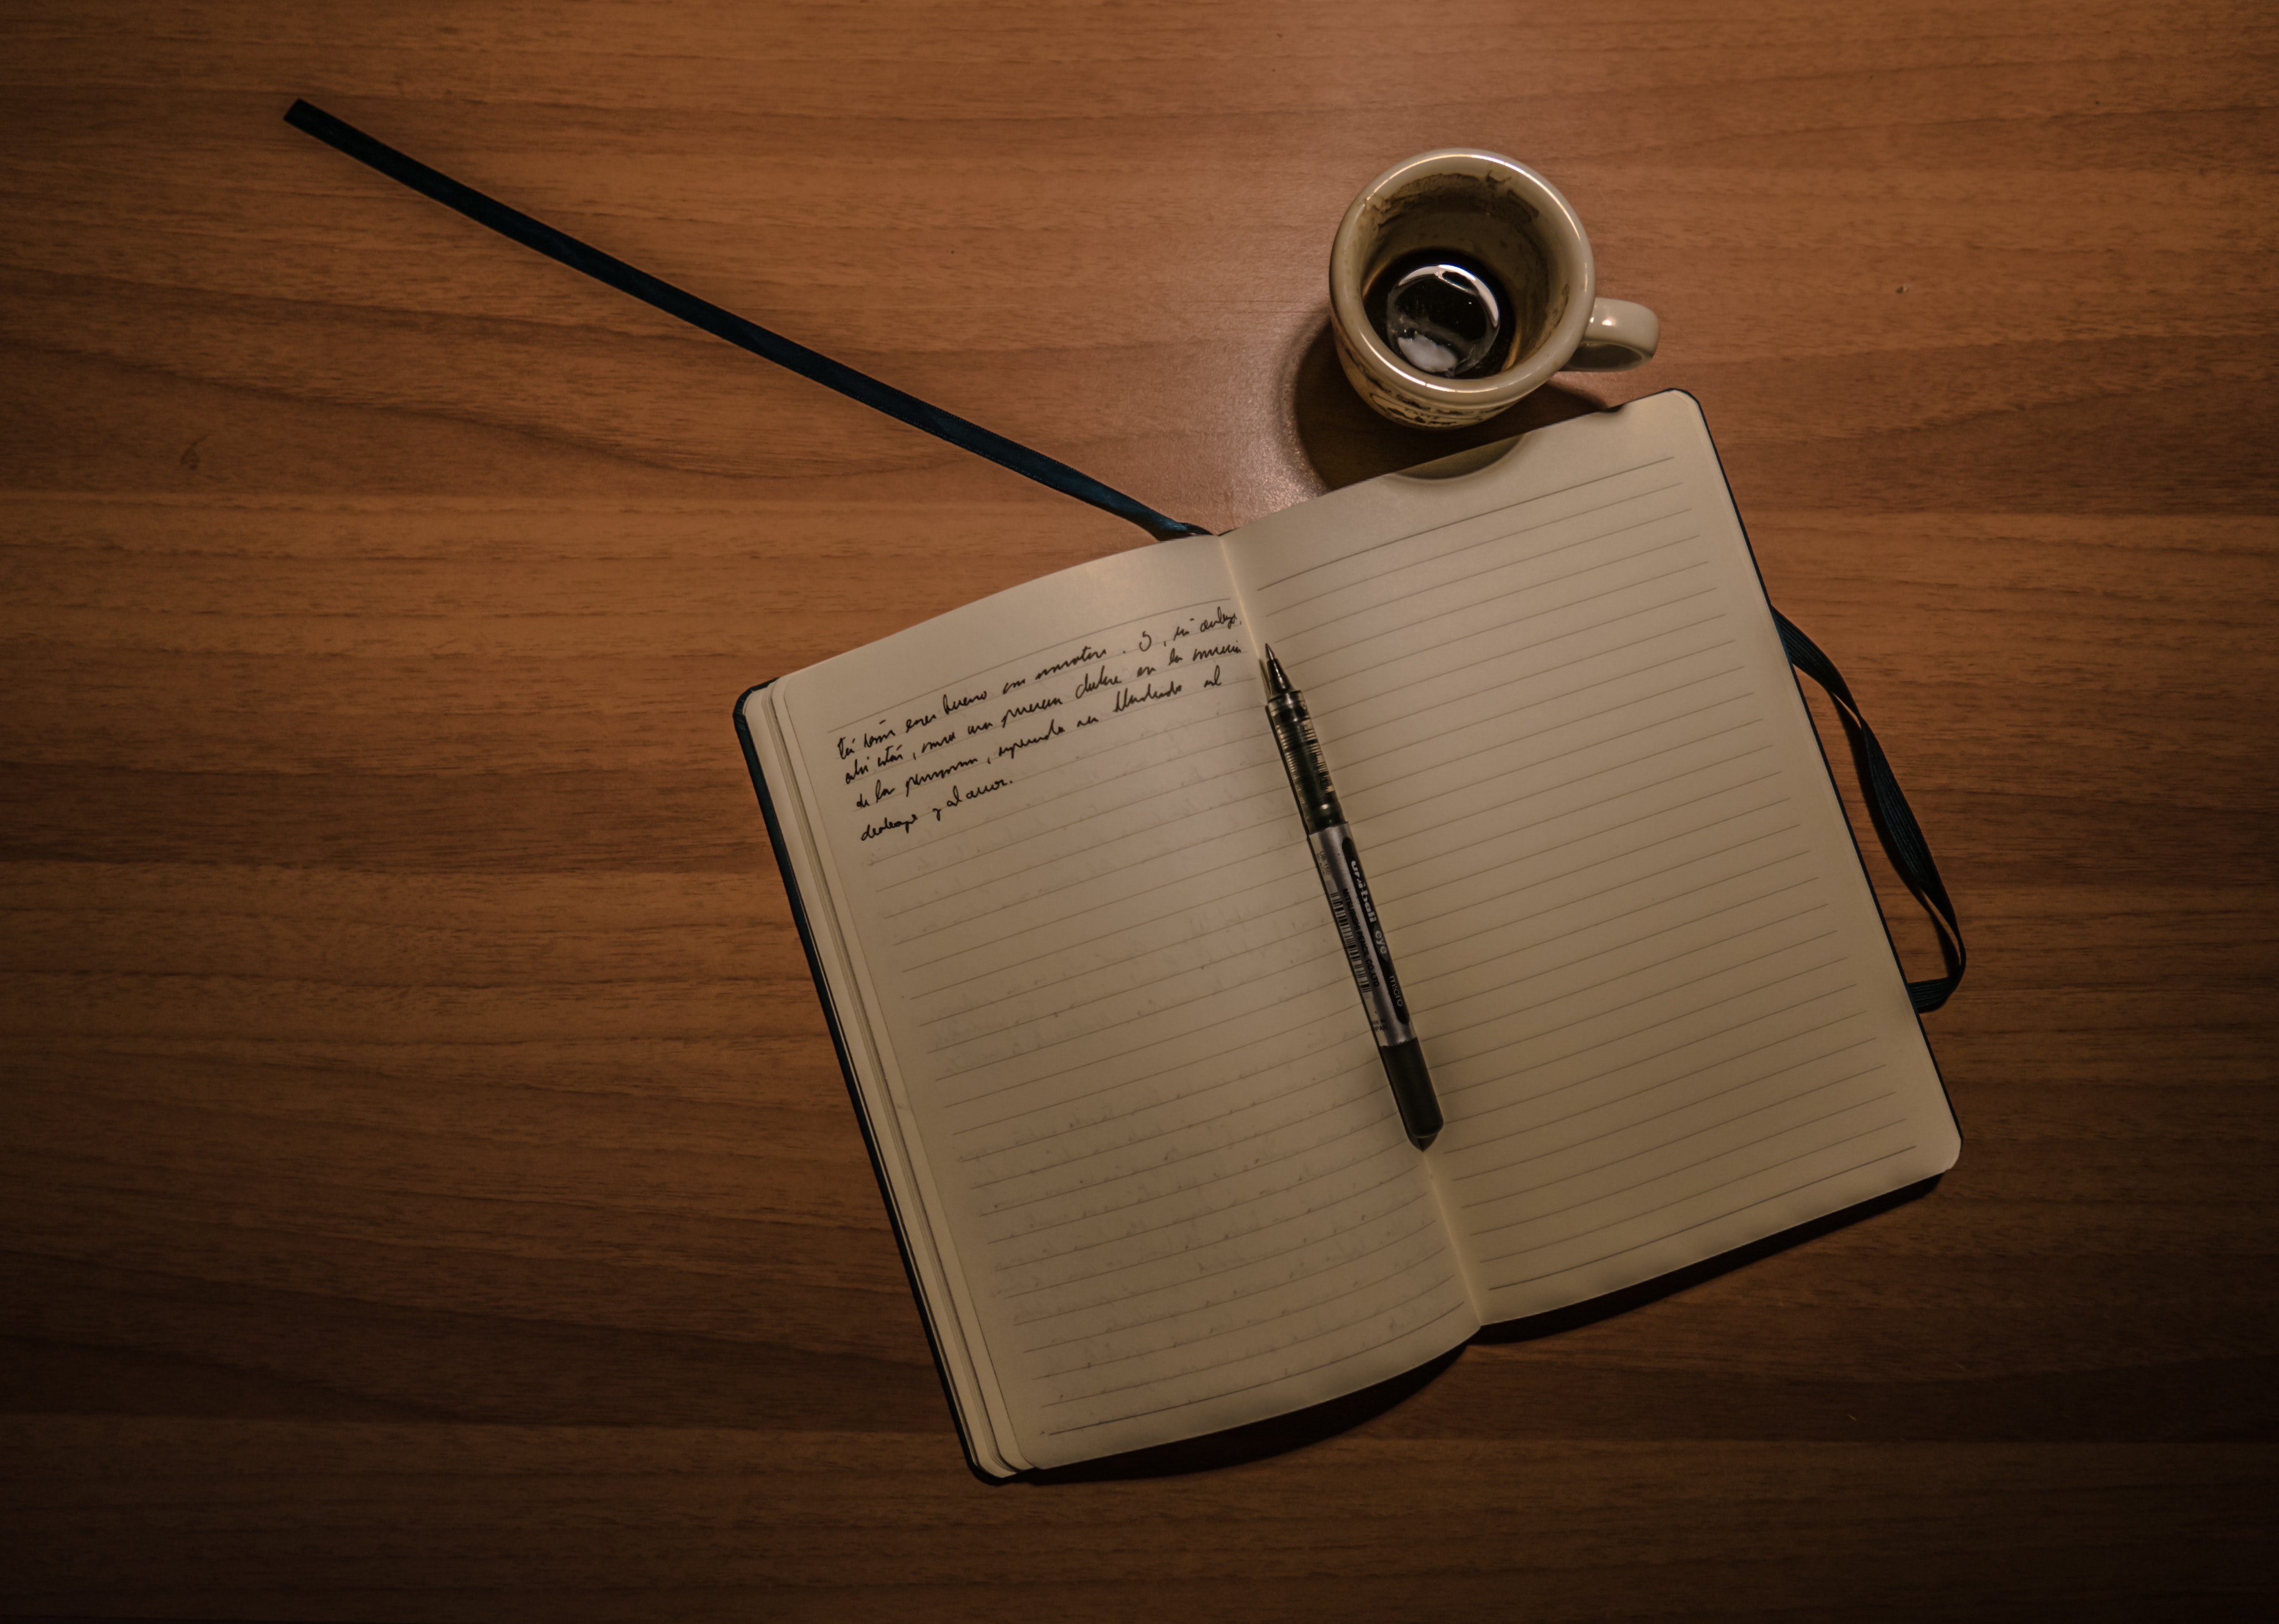 Pen on notebook beside a teacup on brown wooden plank photo